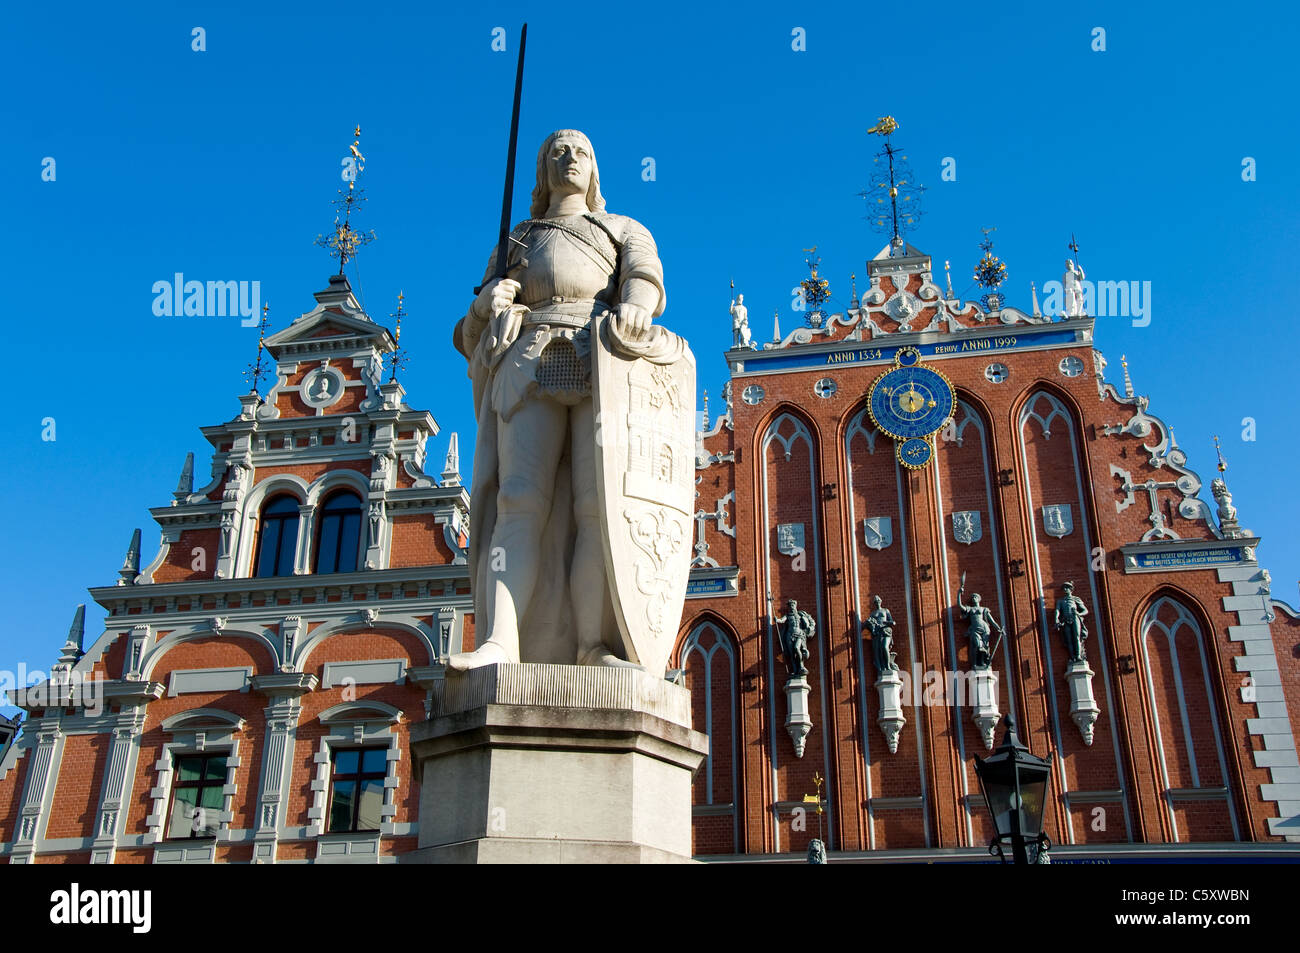 House of the Blackheads, Town Hall Square, Riga, Latvia - Stock Image